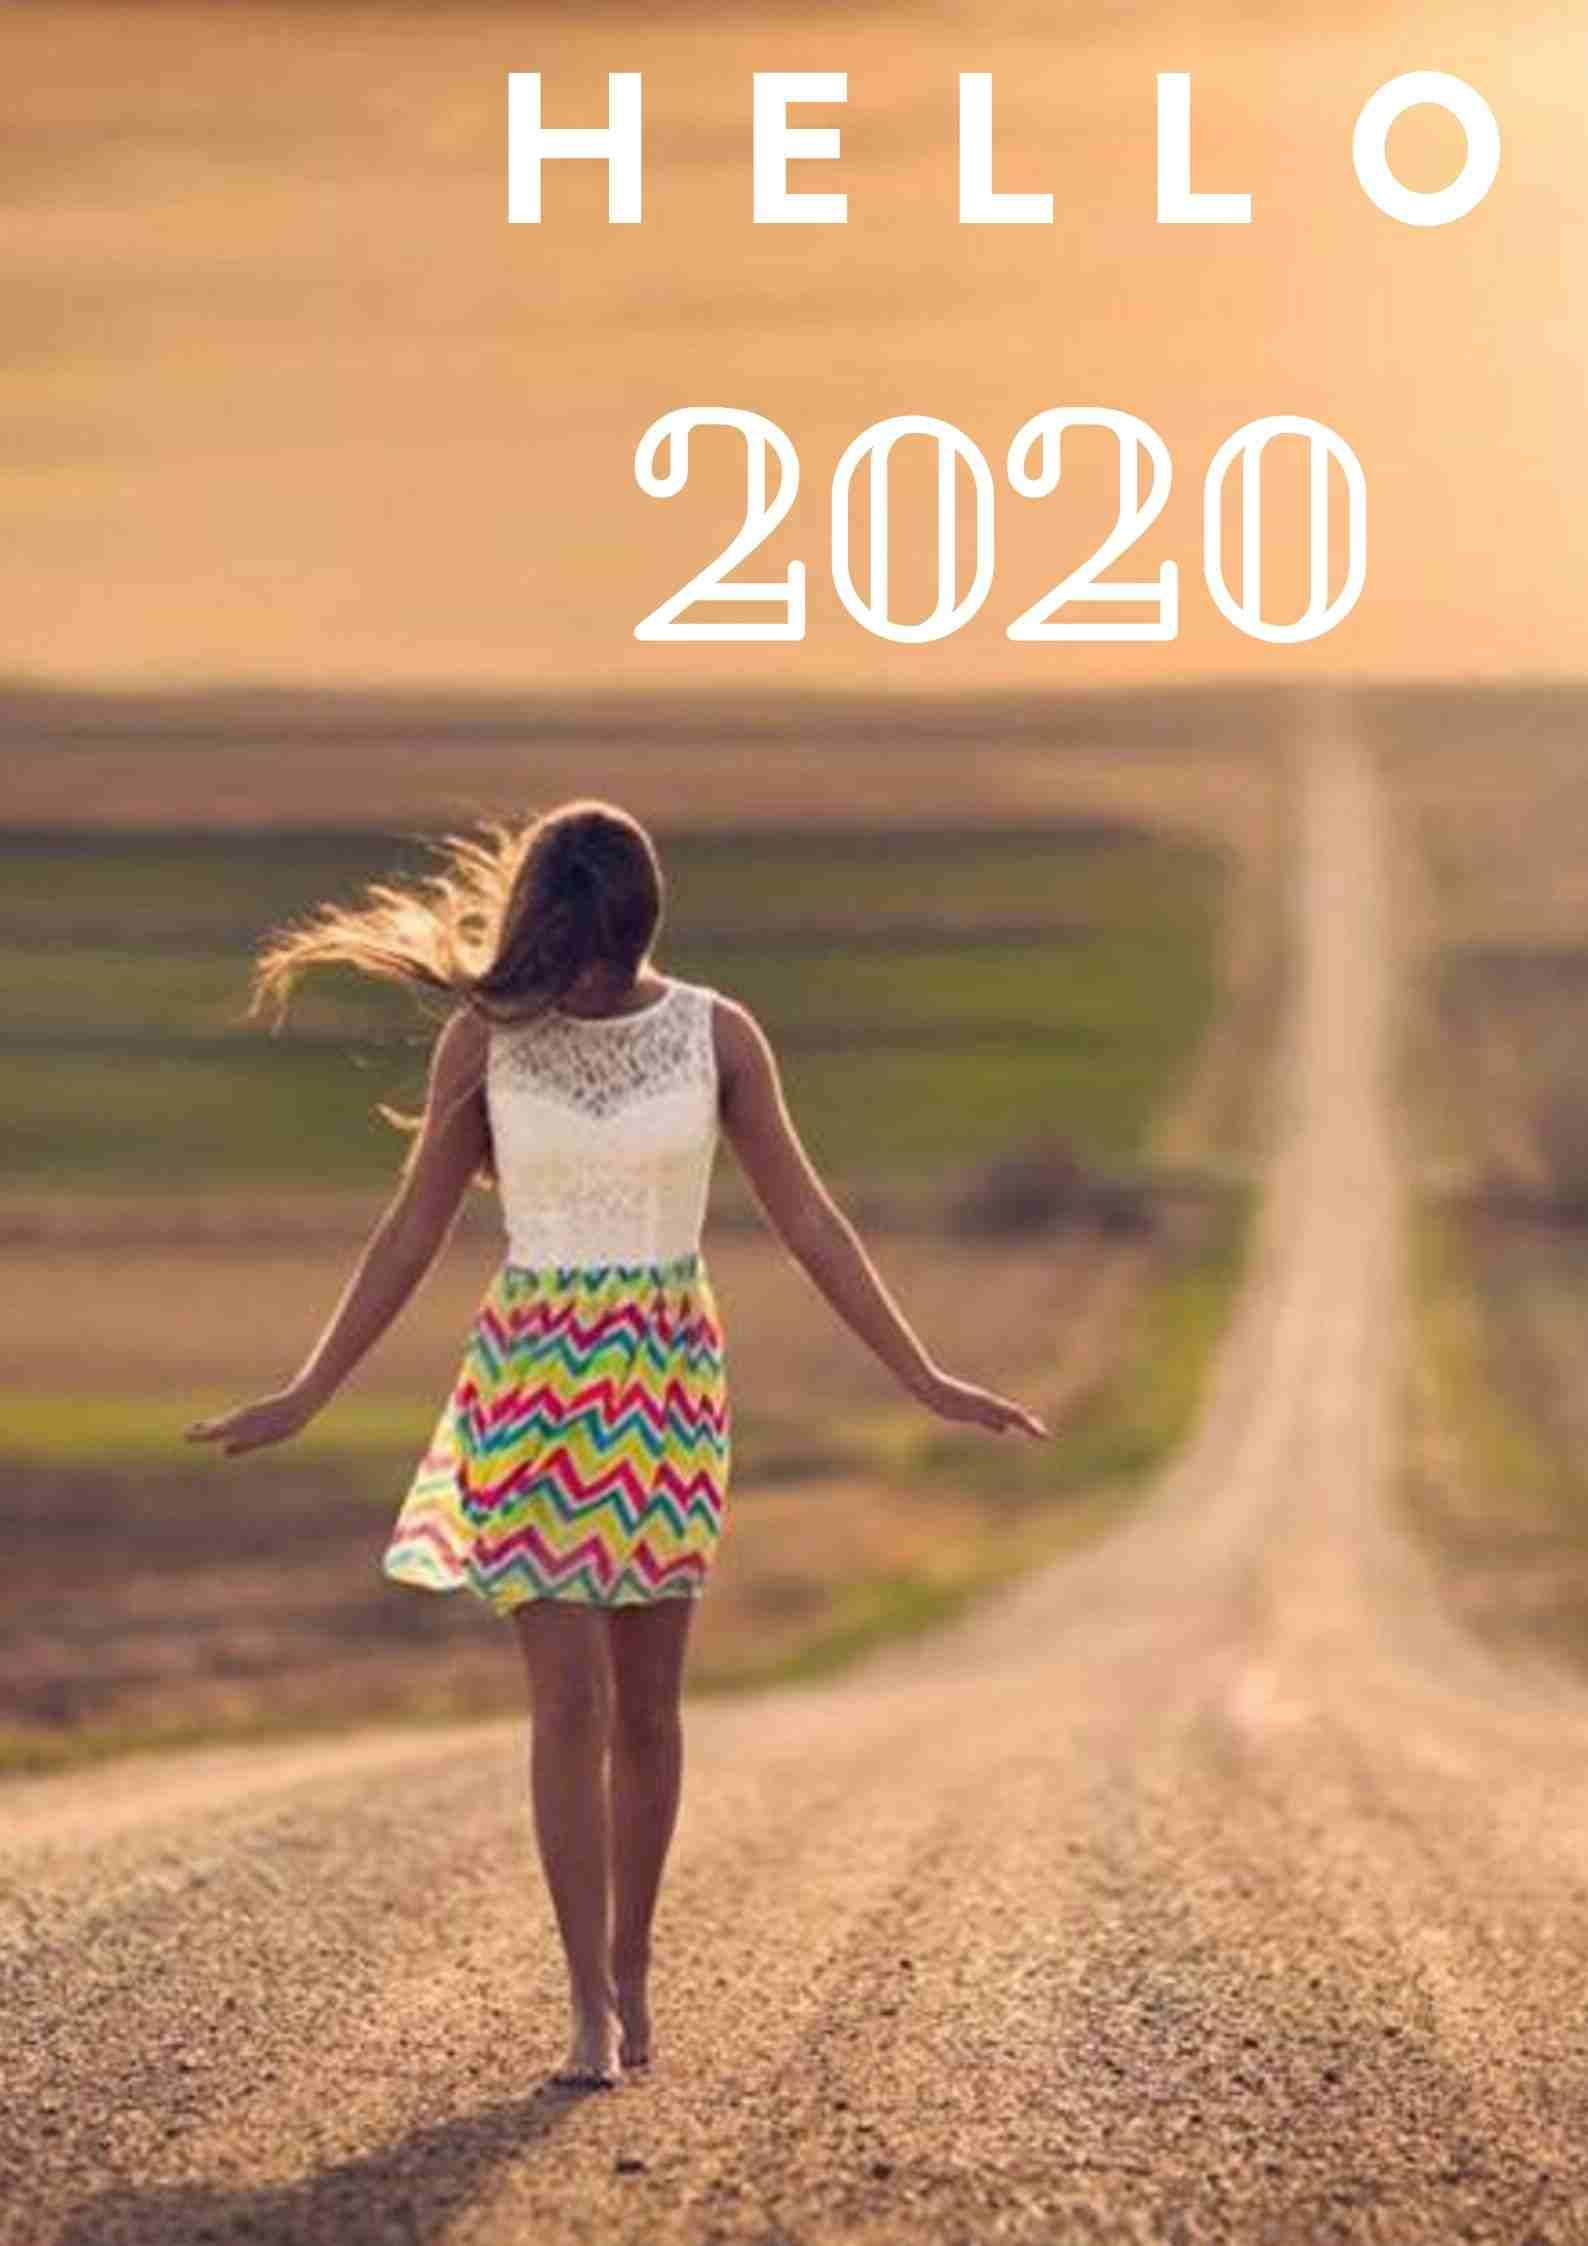 Hello 2020 cards for friends & family. What a wonderful